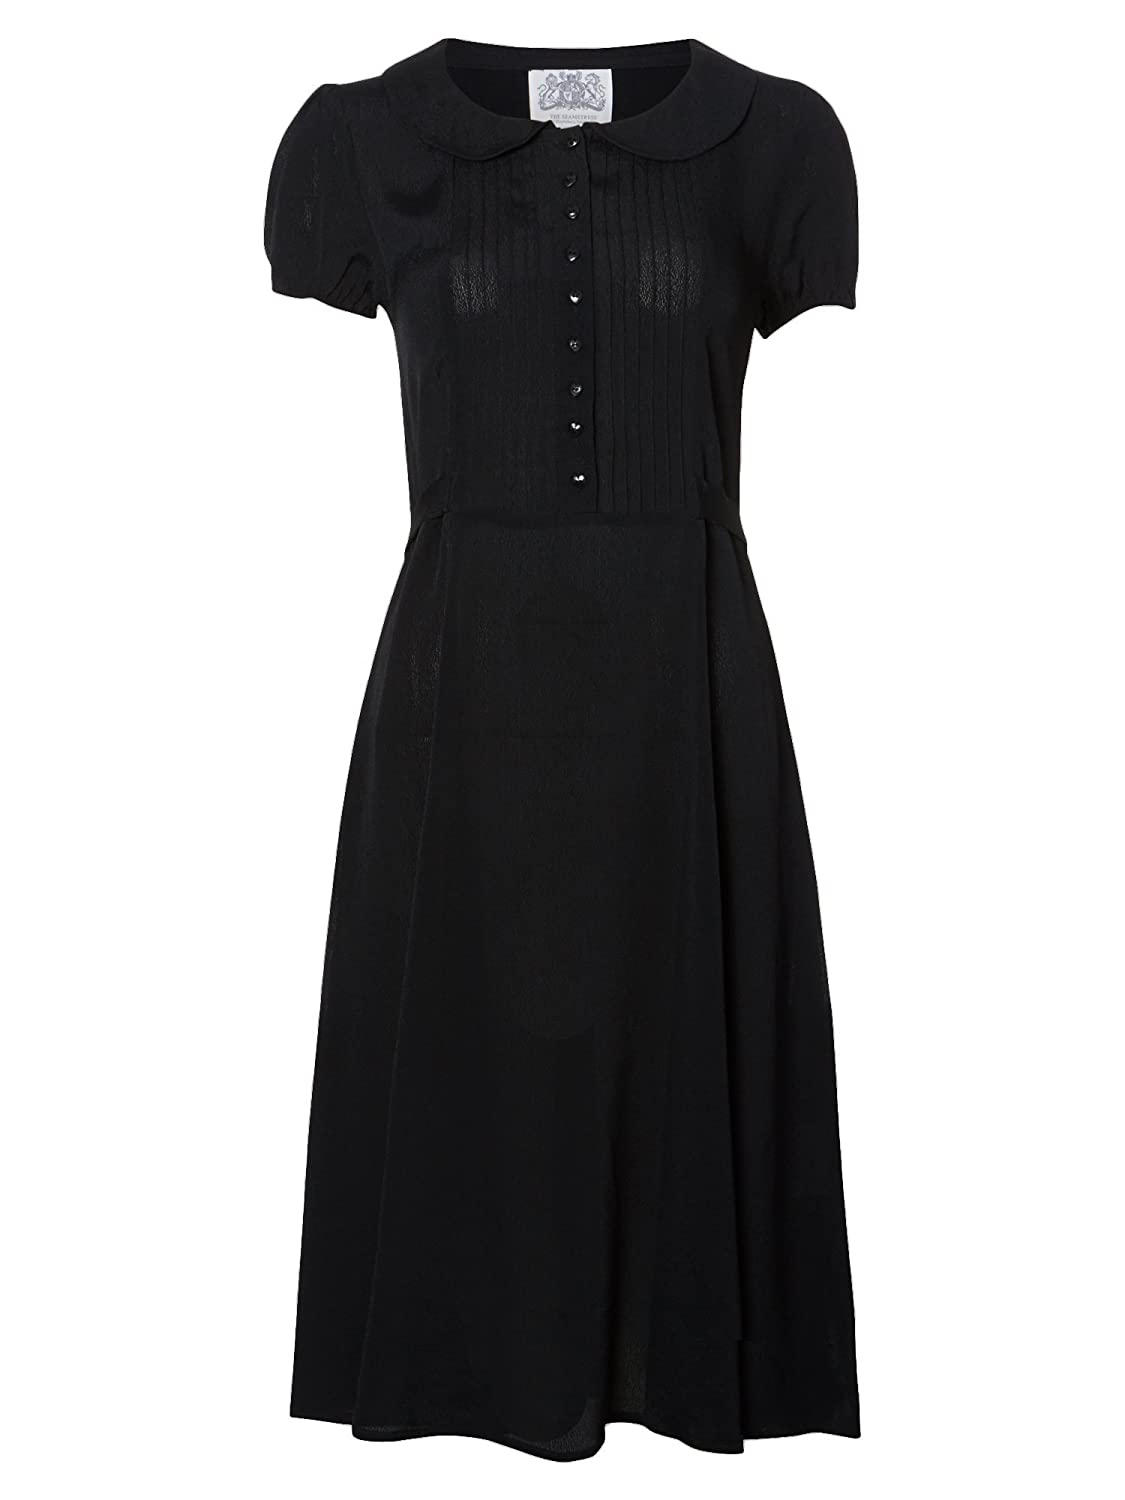 1940s Dresses and Clothing UK | 40s Shoes UK 1940s Authentic Vintage Inspired Dorothy Dress in Black £79.00 AT vintagedancer.com